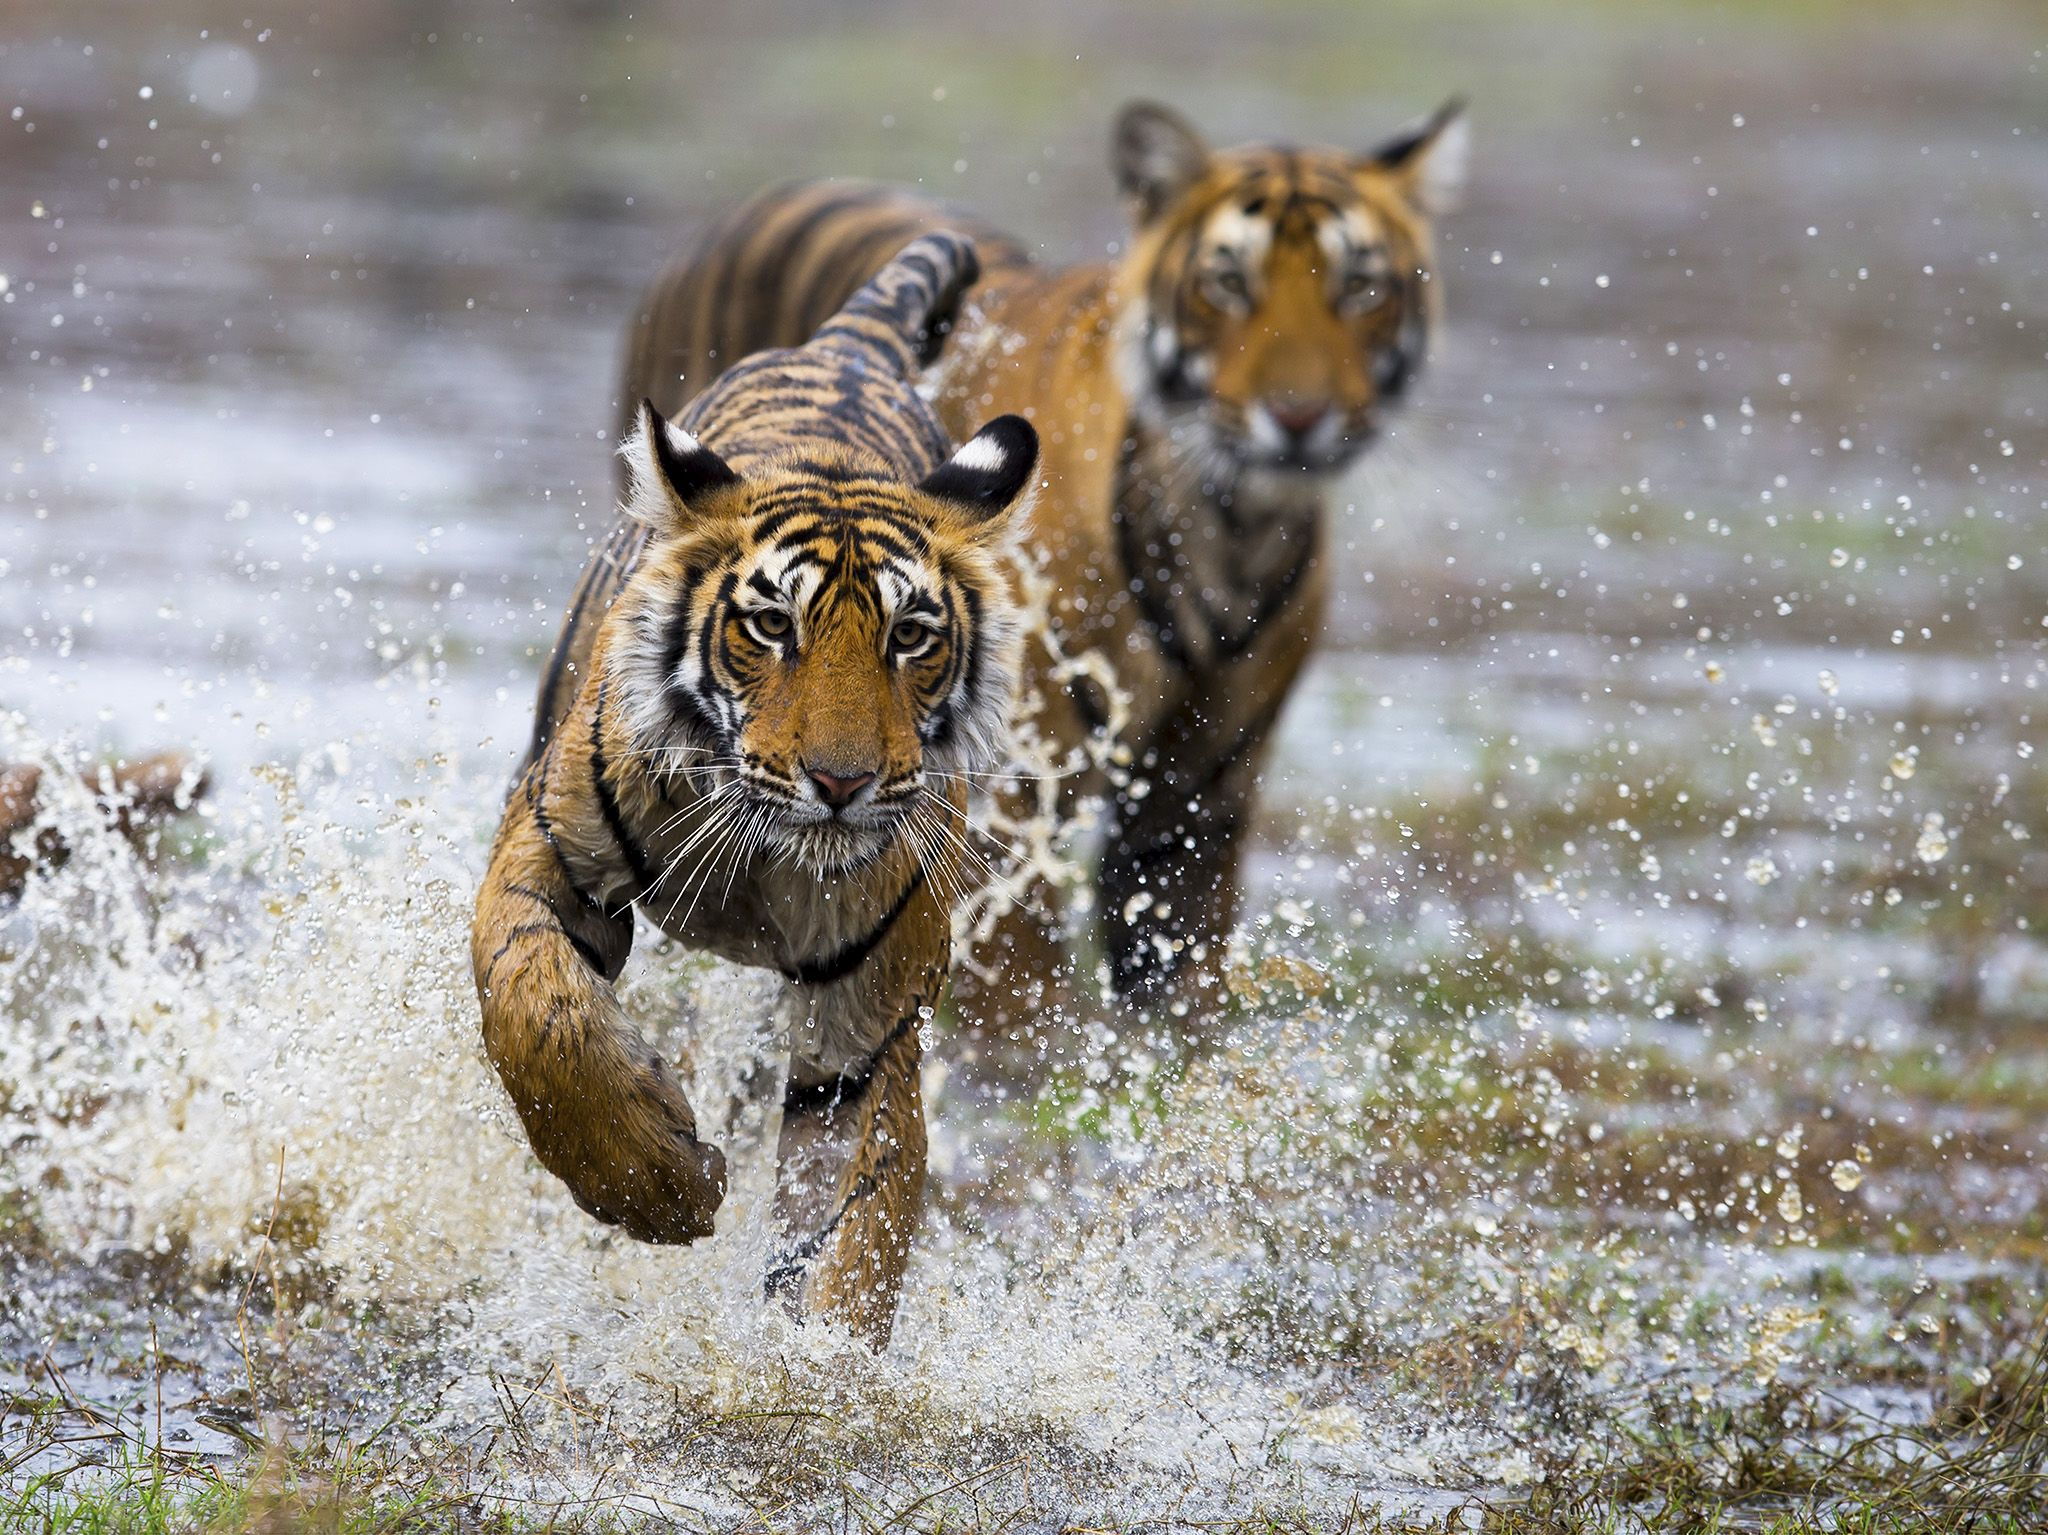 Sawai Madhopur, Rajasthan, India:  Teera races through the shallow water of the lake while Bhola... [Photo of the day - January 2019]